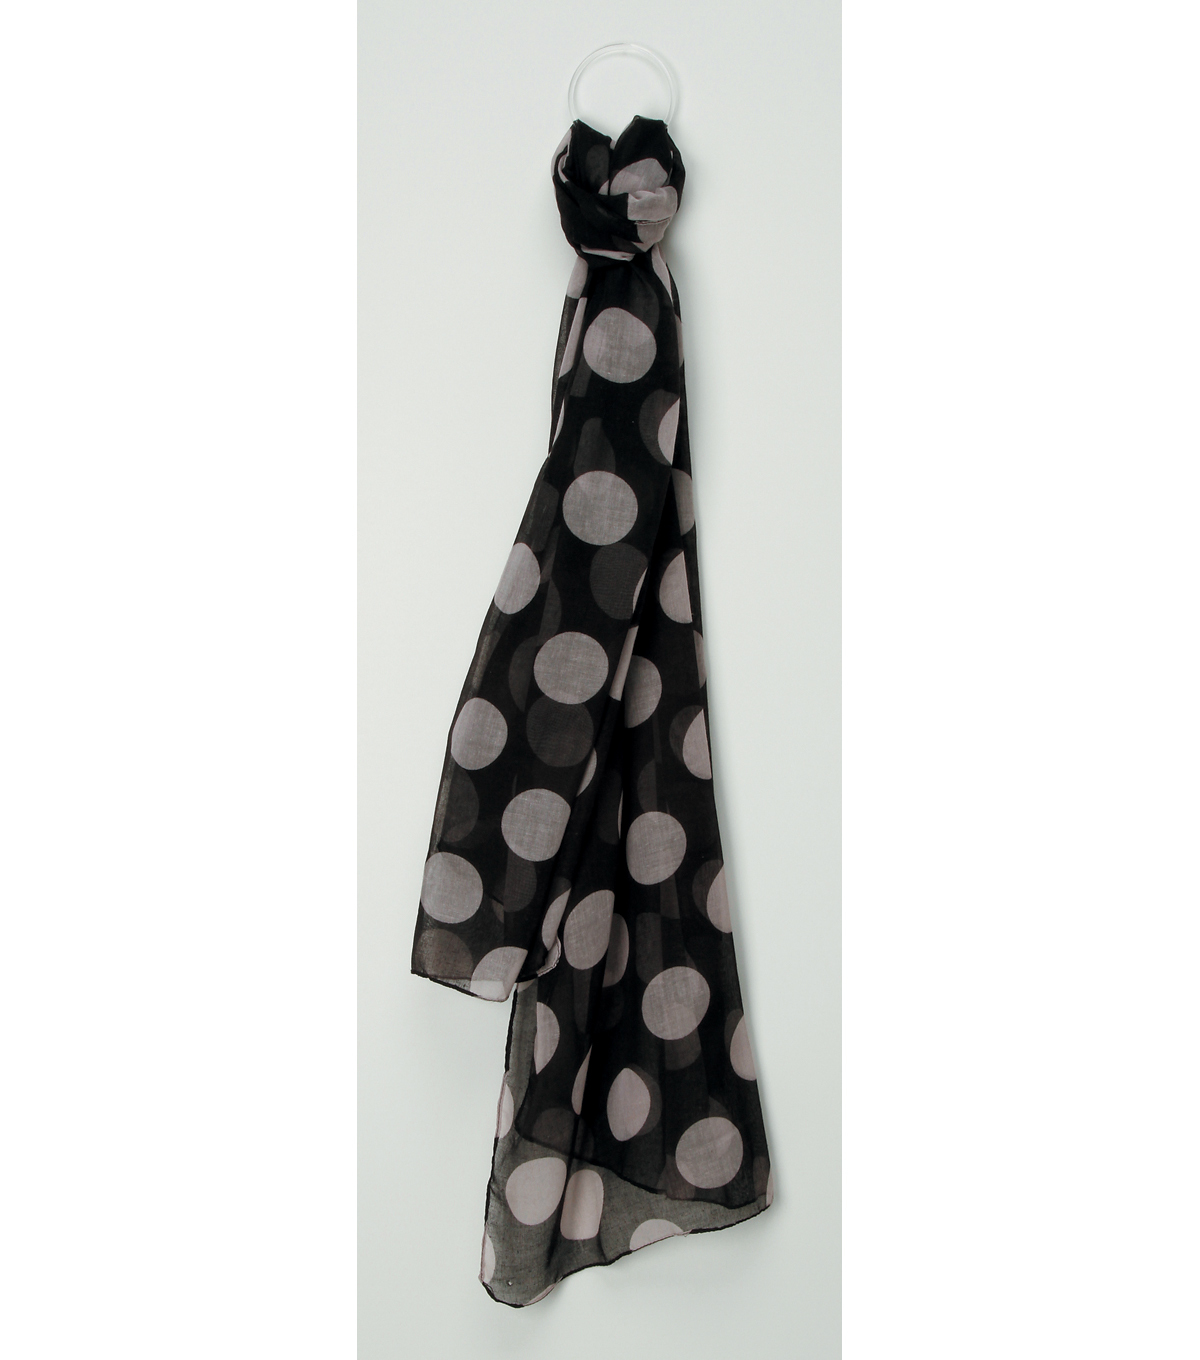 Oxford Street Jewelry Co. Black Scarf with White Polka Dots